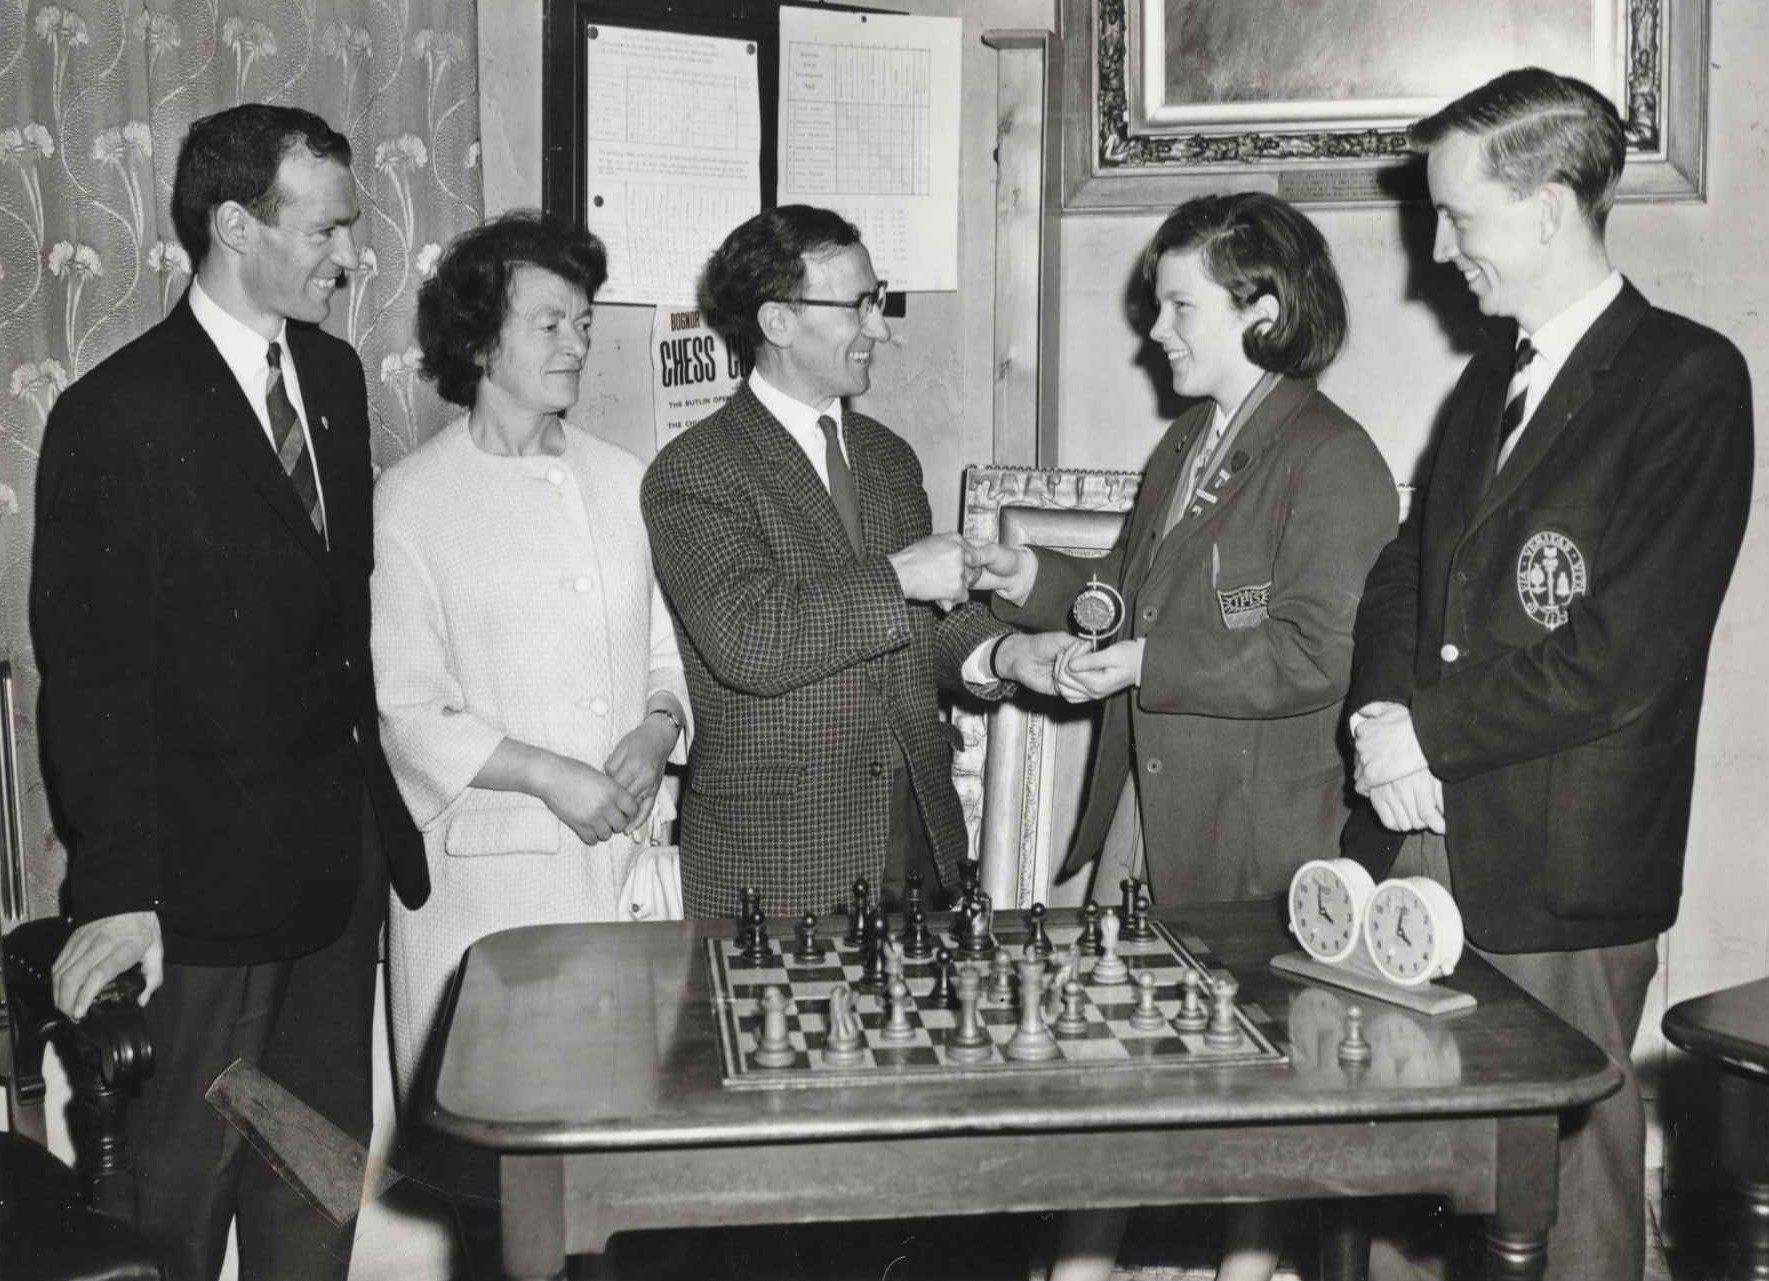 Prizegiving at the 1966 Scottish Championships. From the left: Michael Fallone, Nancy Elder, W.P. McColl, President of Dundee Chess Club, Kathleen Patterson, Gerald Bonner. Courtesy of Chess Scotland